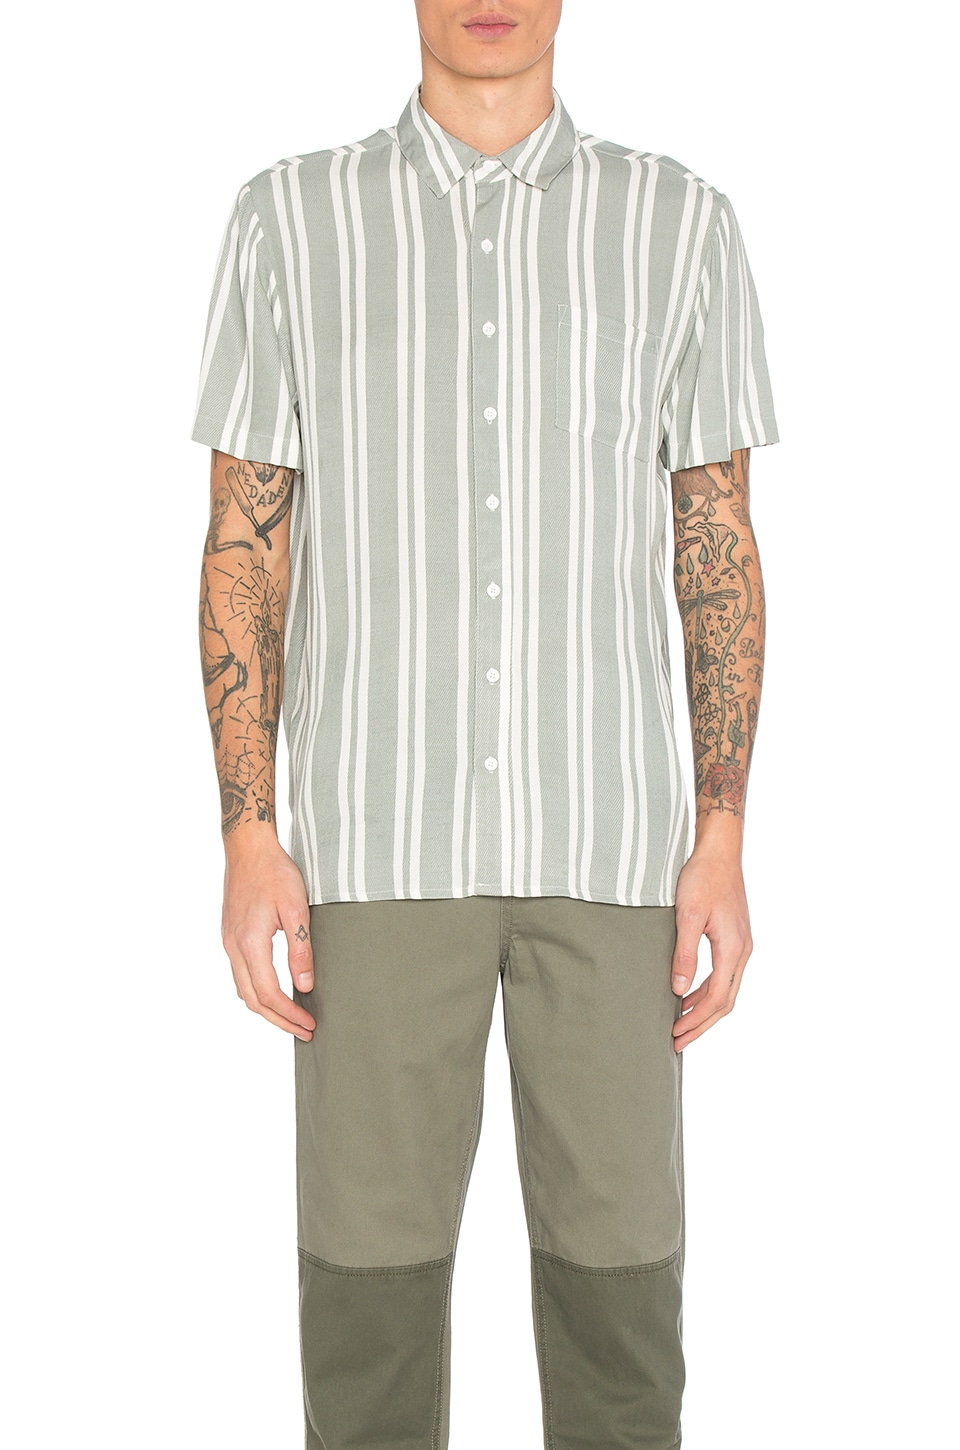 Tunstall Shirt by Native Youth